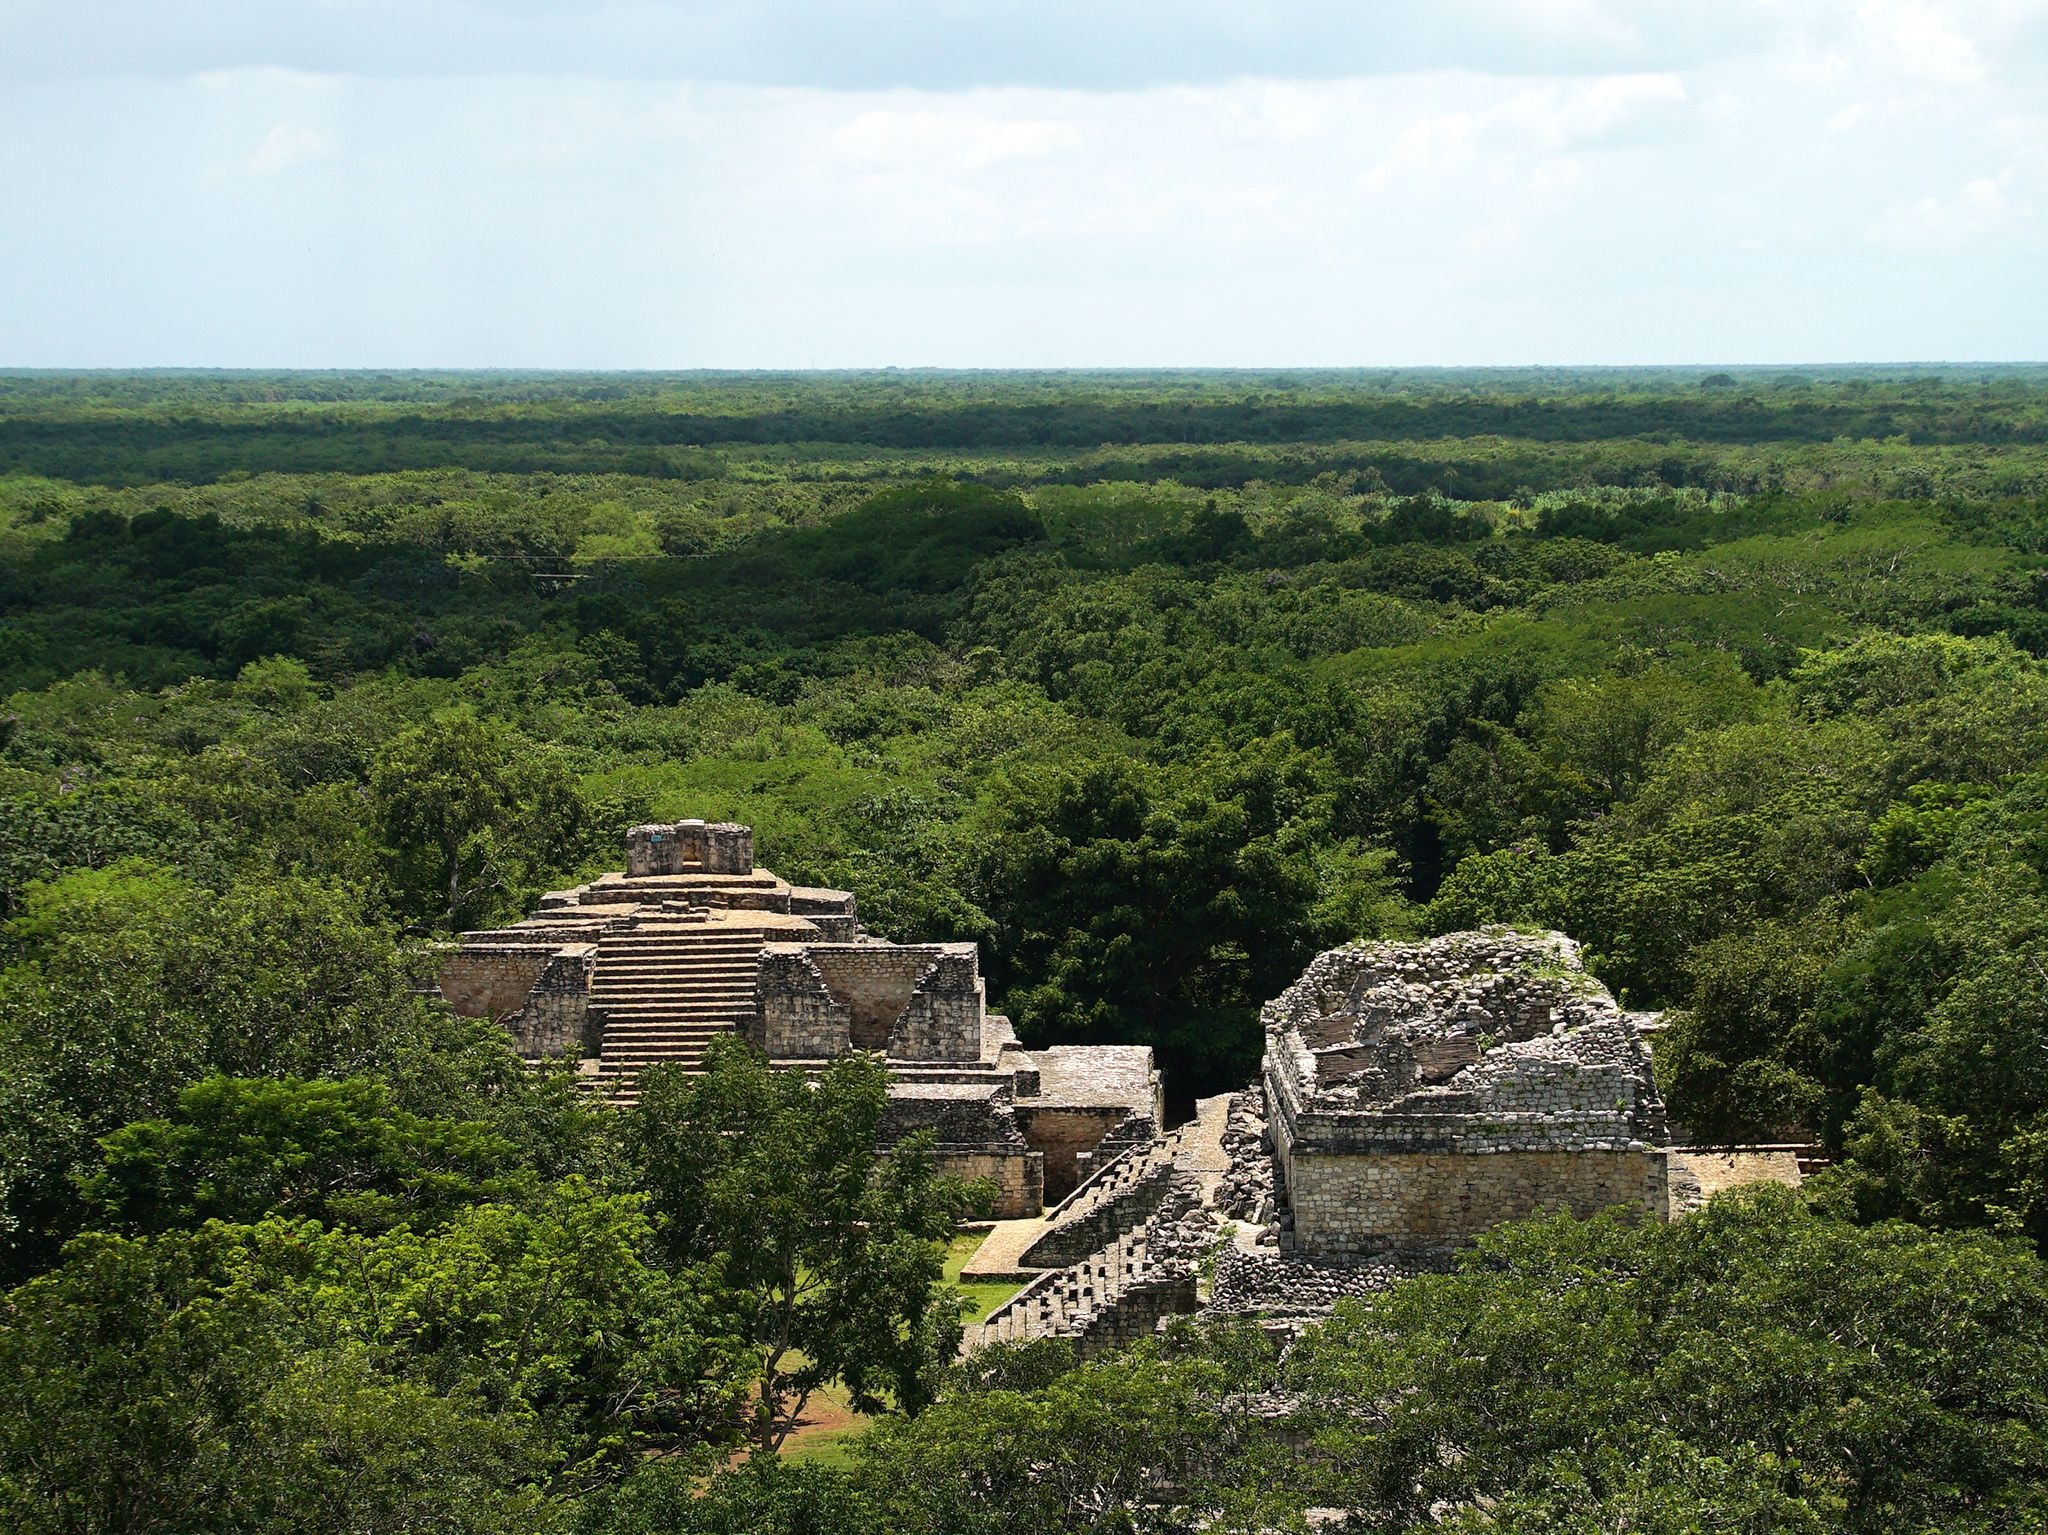 Aerial view of Mayan ruins at Chichen Itza. This image is from Buried Truth of the Maya. [Photo of the day - سپتامبر 2019]